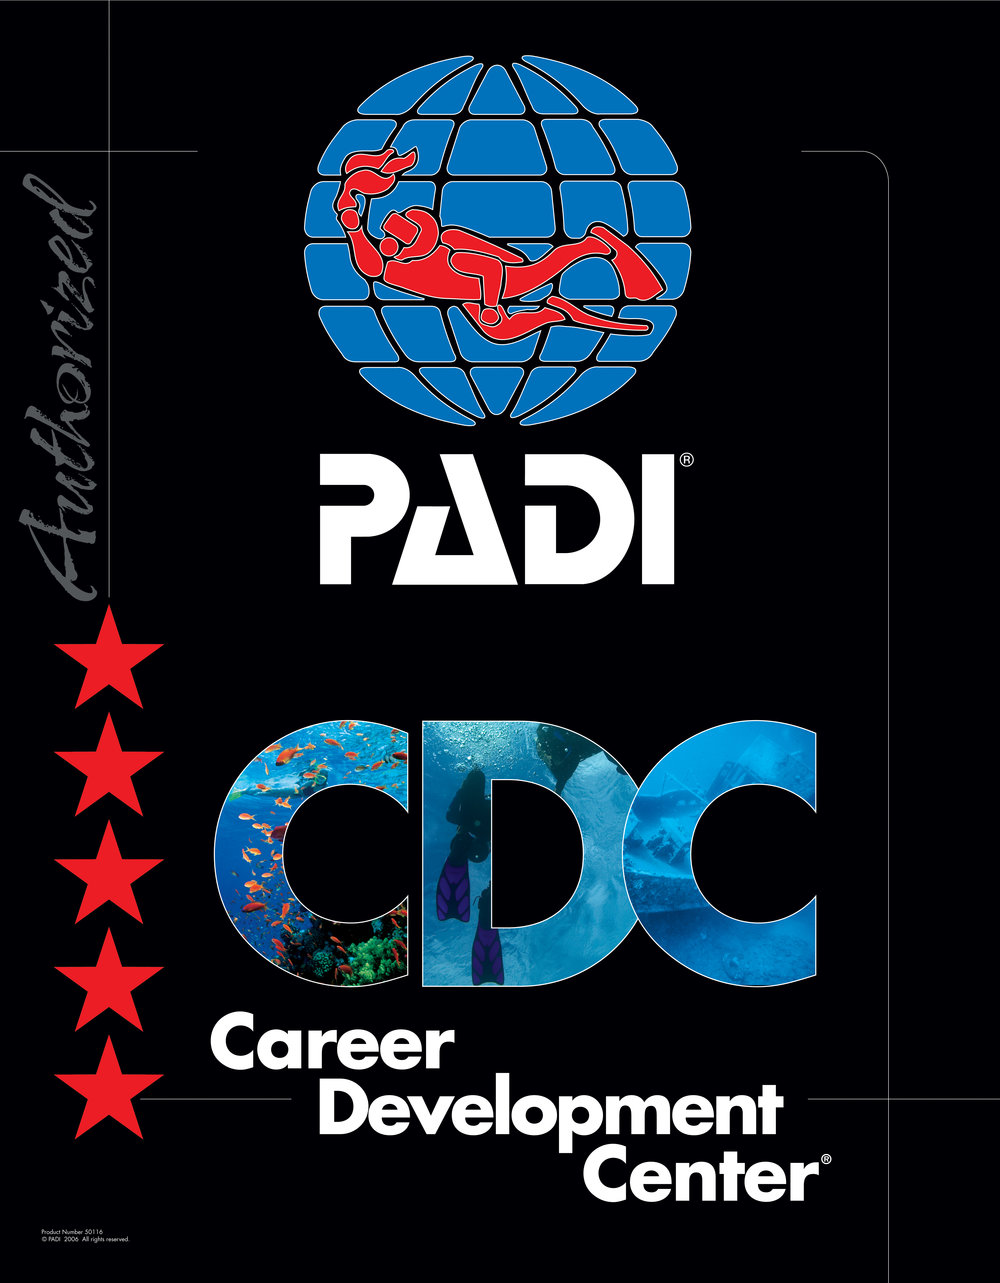 PADI Blue Corner CDC IDC Five Star